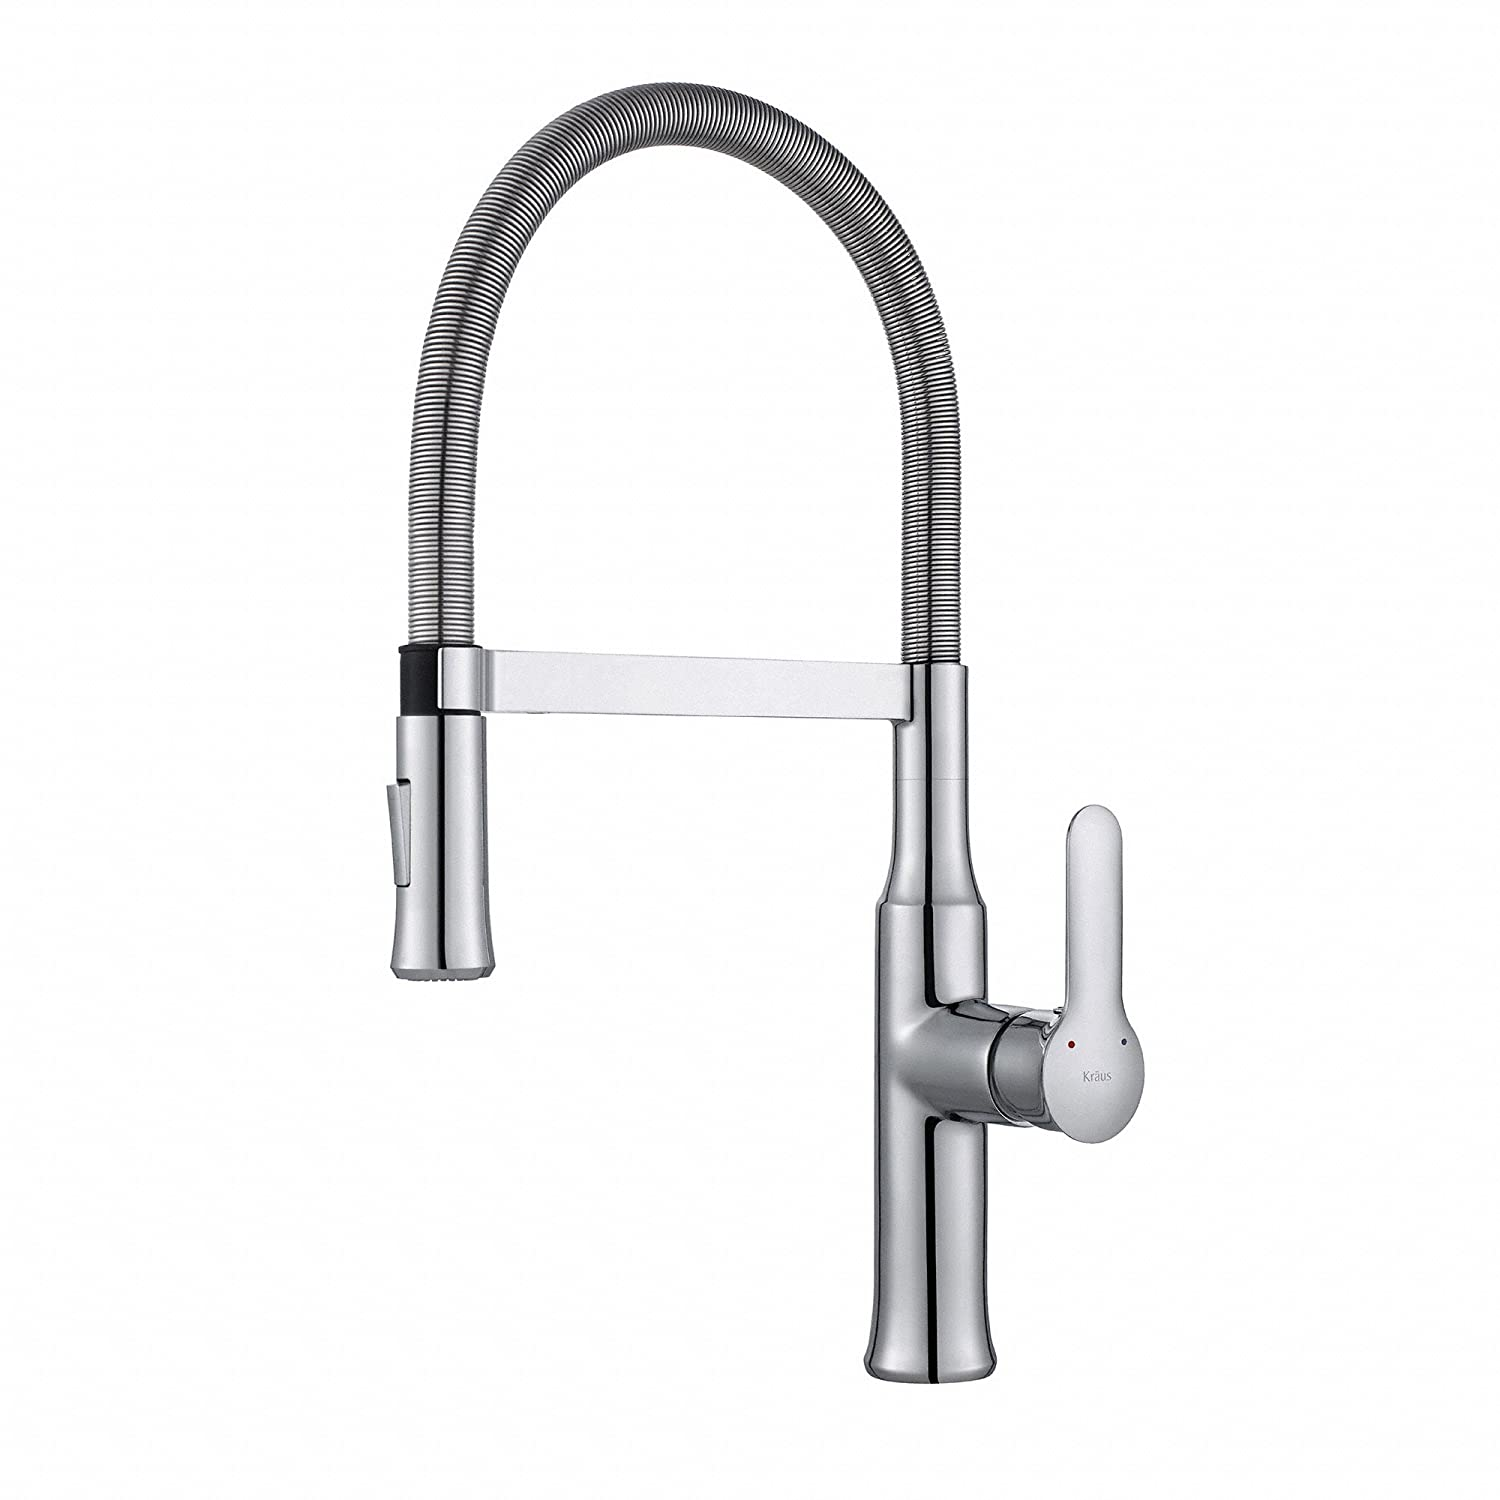 Kraus KPF 1640CH Modern Nola Single Lever Flex Commercial Style Kitchen  Faucet, Chrome     Amazon.com